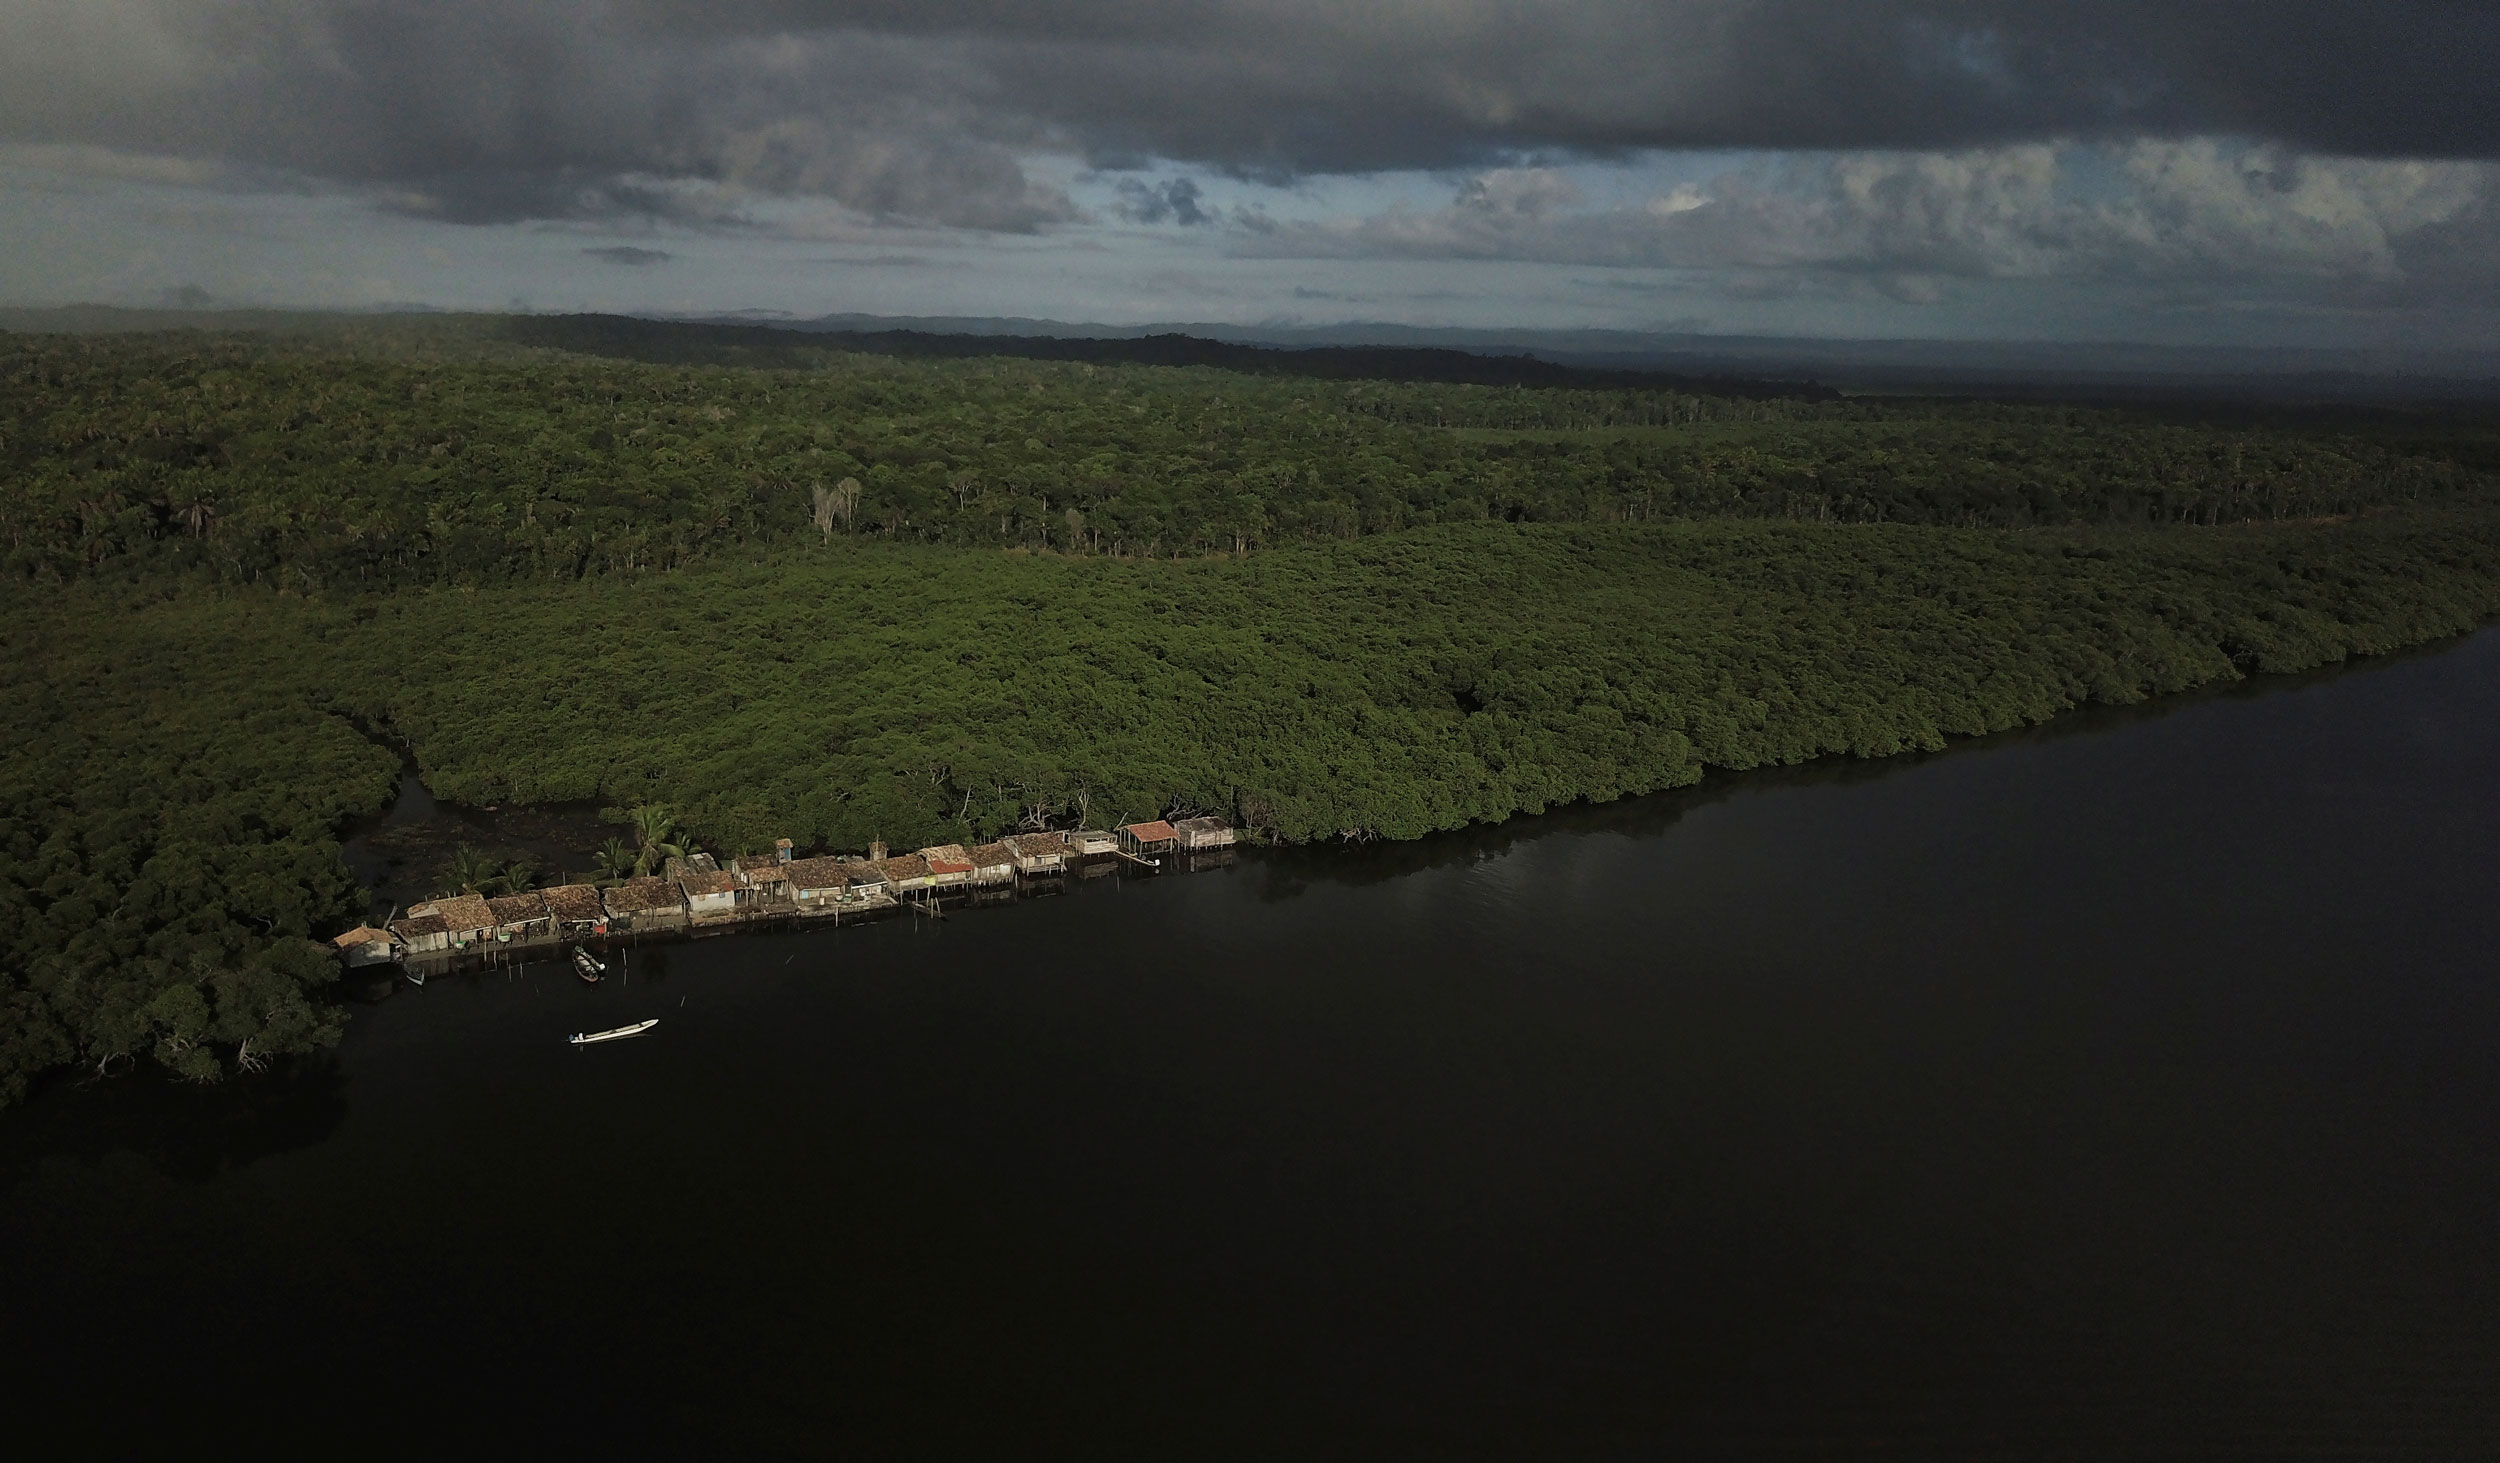 A photograph taken from above shows a small village set alongside a mangrove forest.